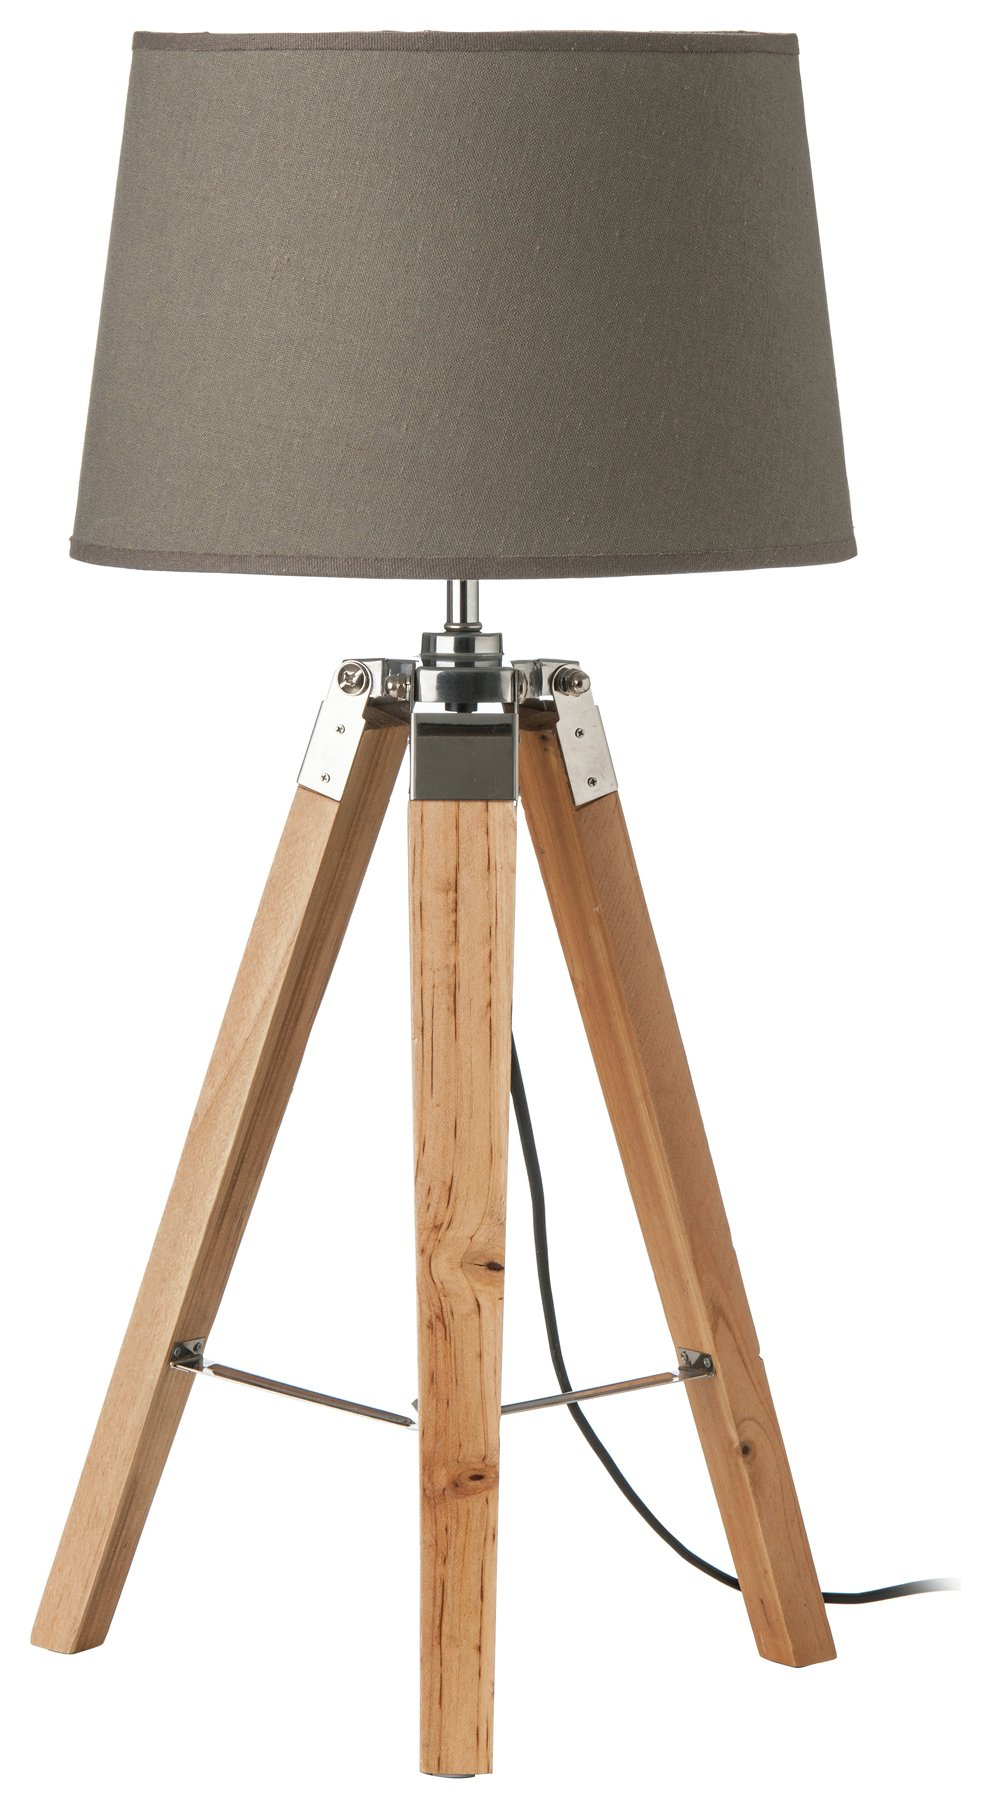 Wood Base Tripod - Table Lamp - Grey from Premier housewares